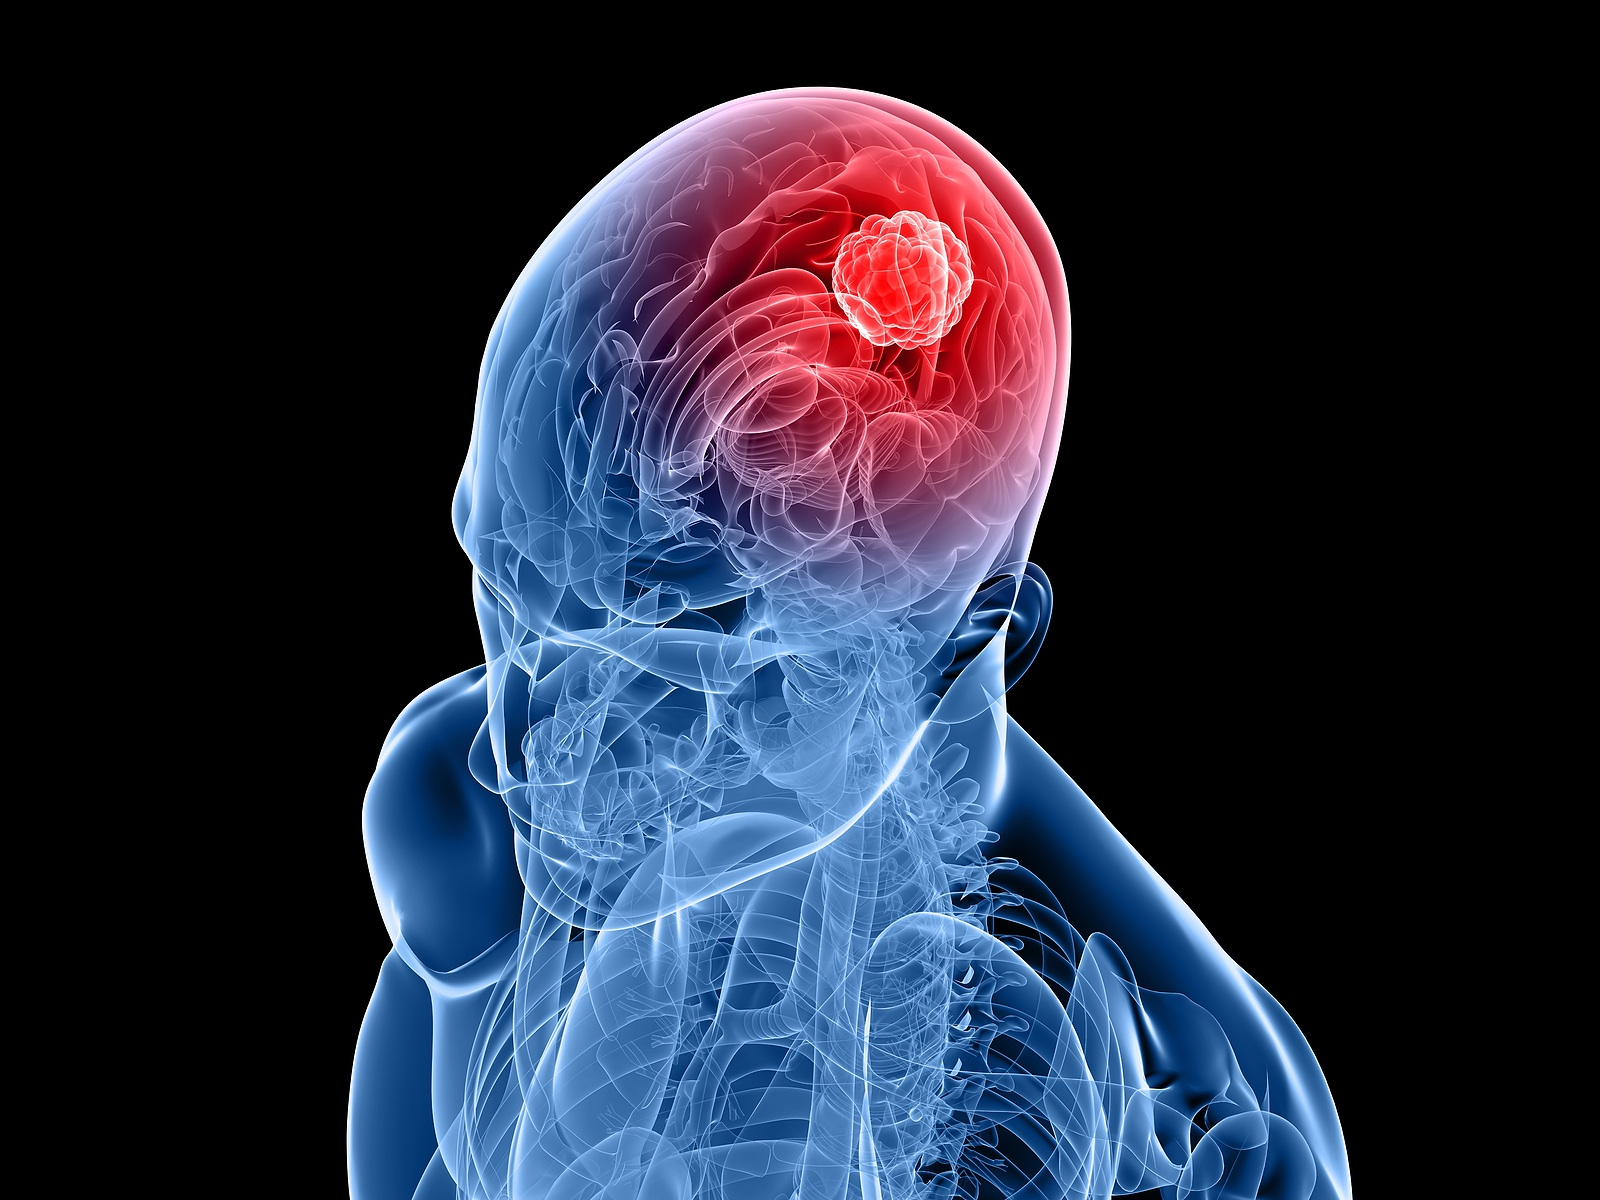 Cancer 101: Malignant brain tumors